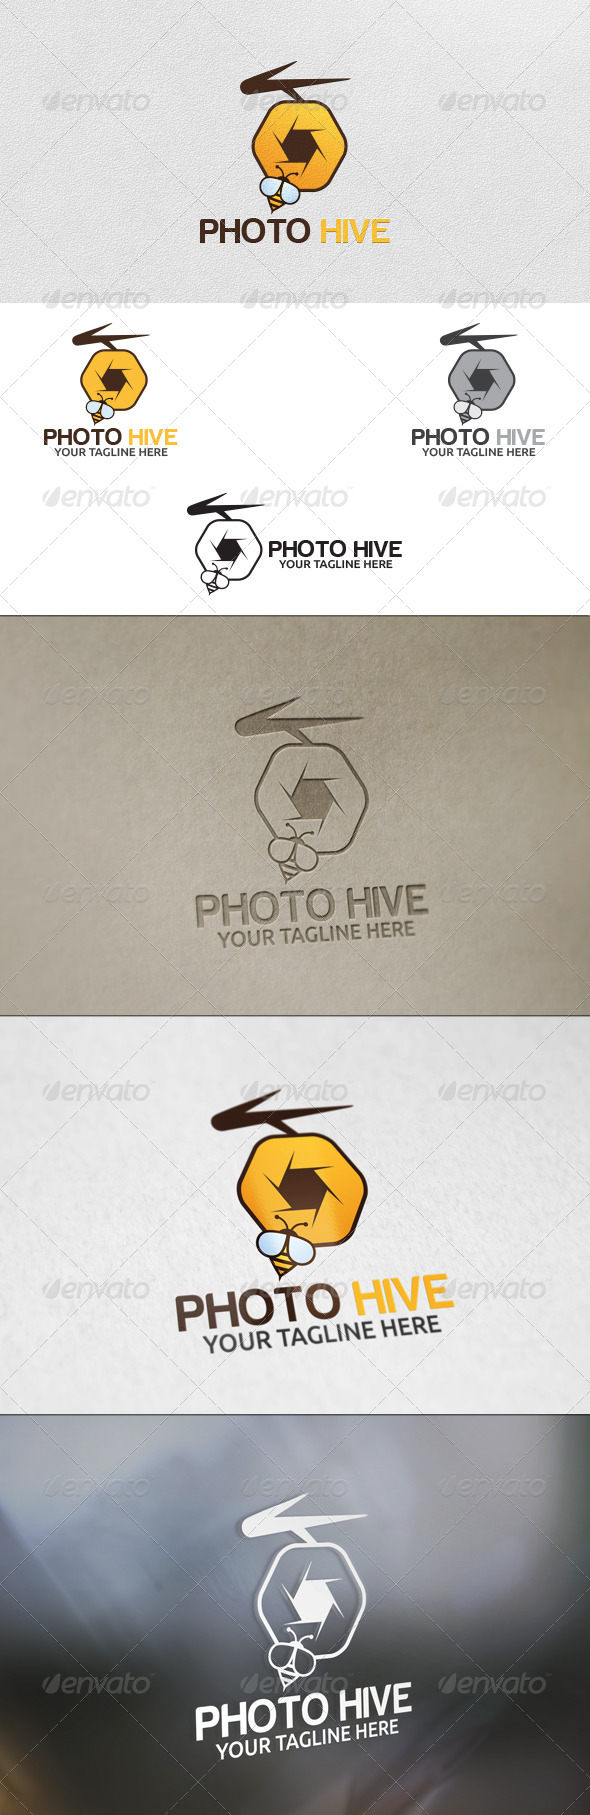 GraphicRiver Photo Hive Logo Template 5948295